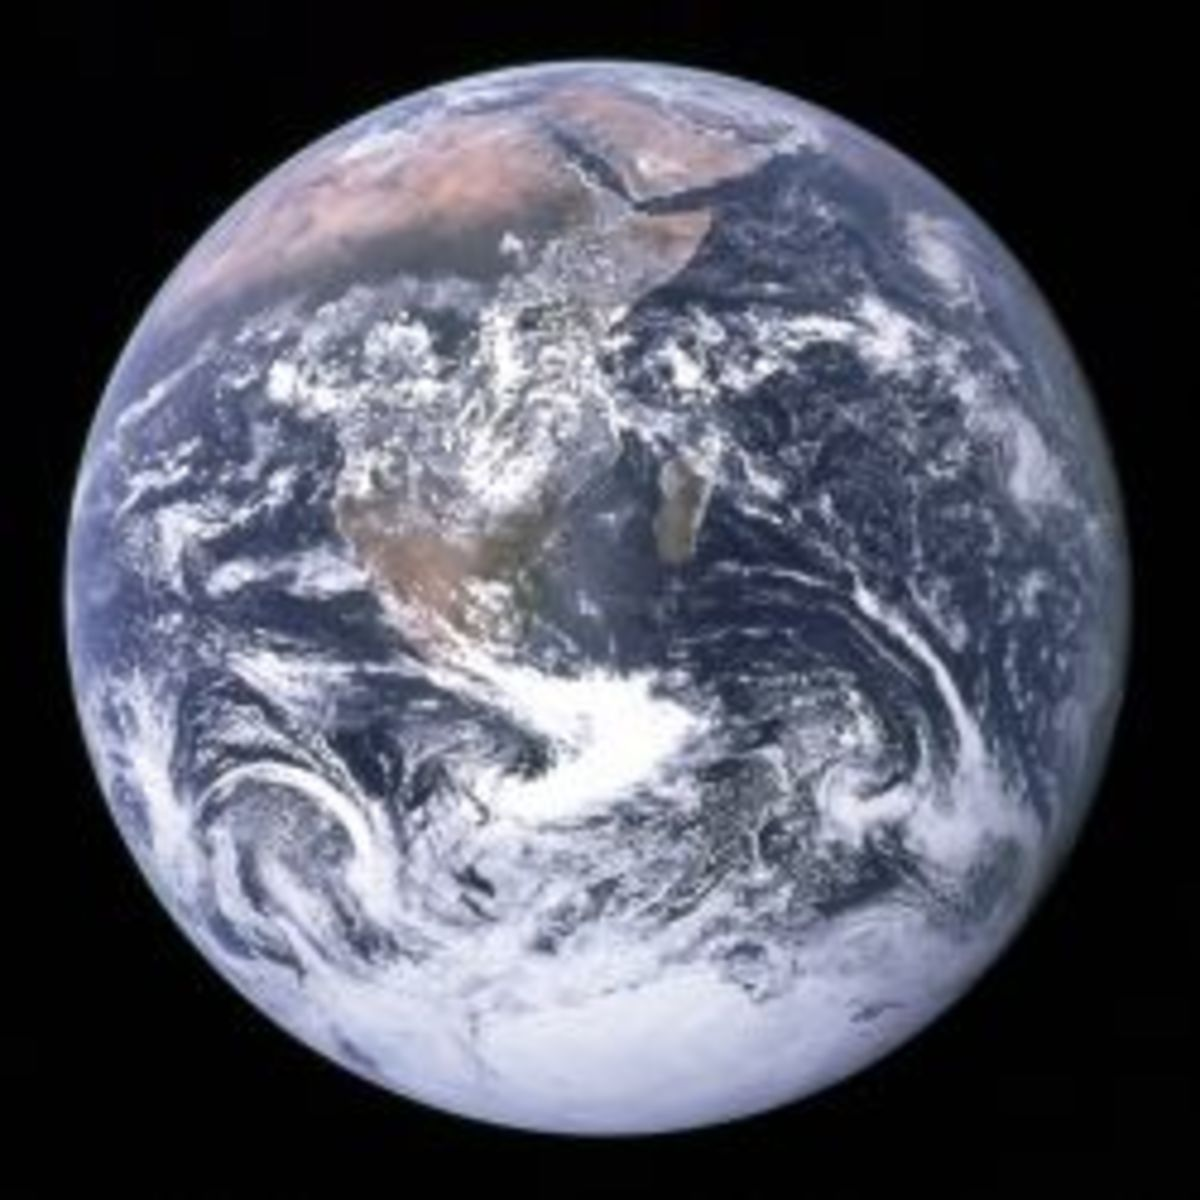 The Earth as seen from the Apollo 17 spacecraft.